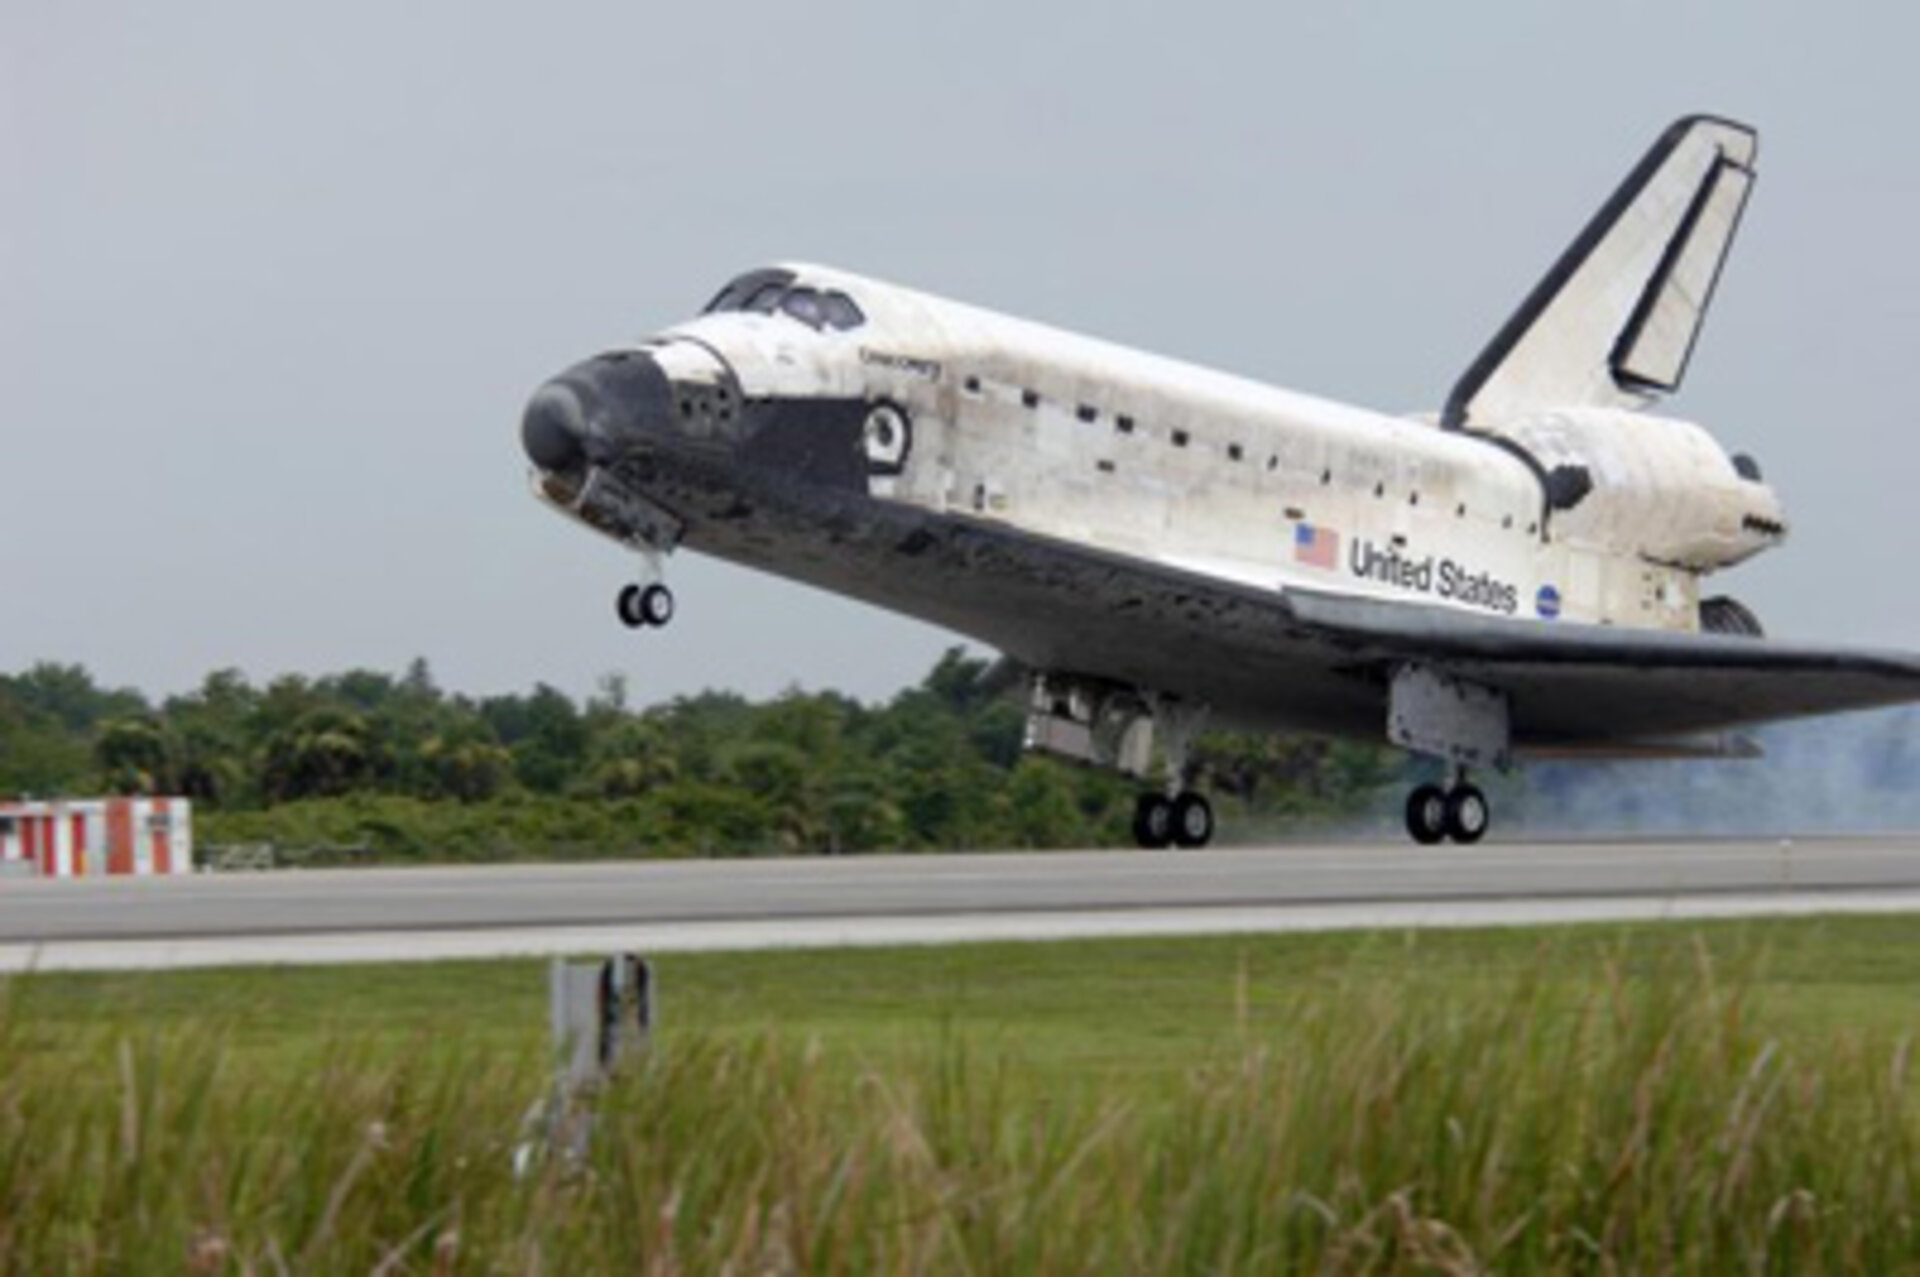 Space Shuttle Discovery lands at KSC